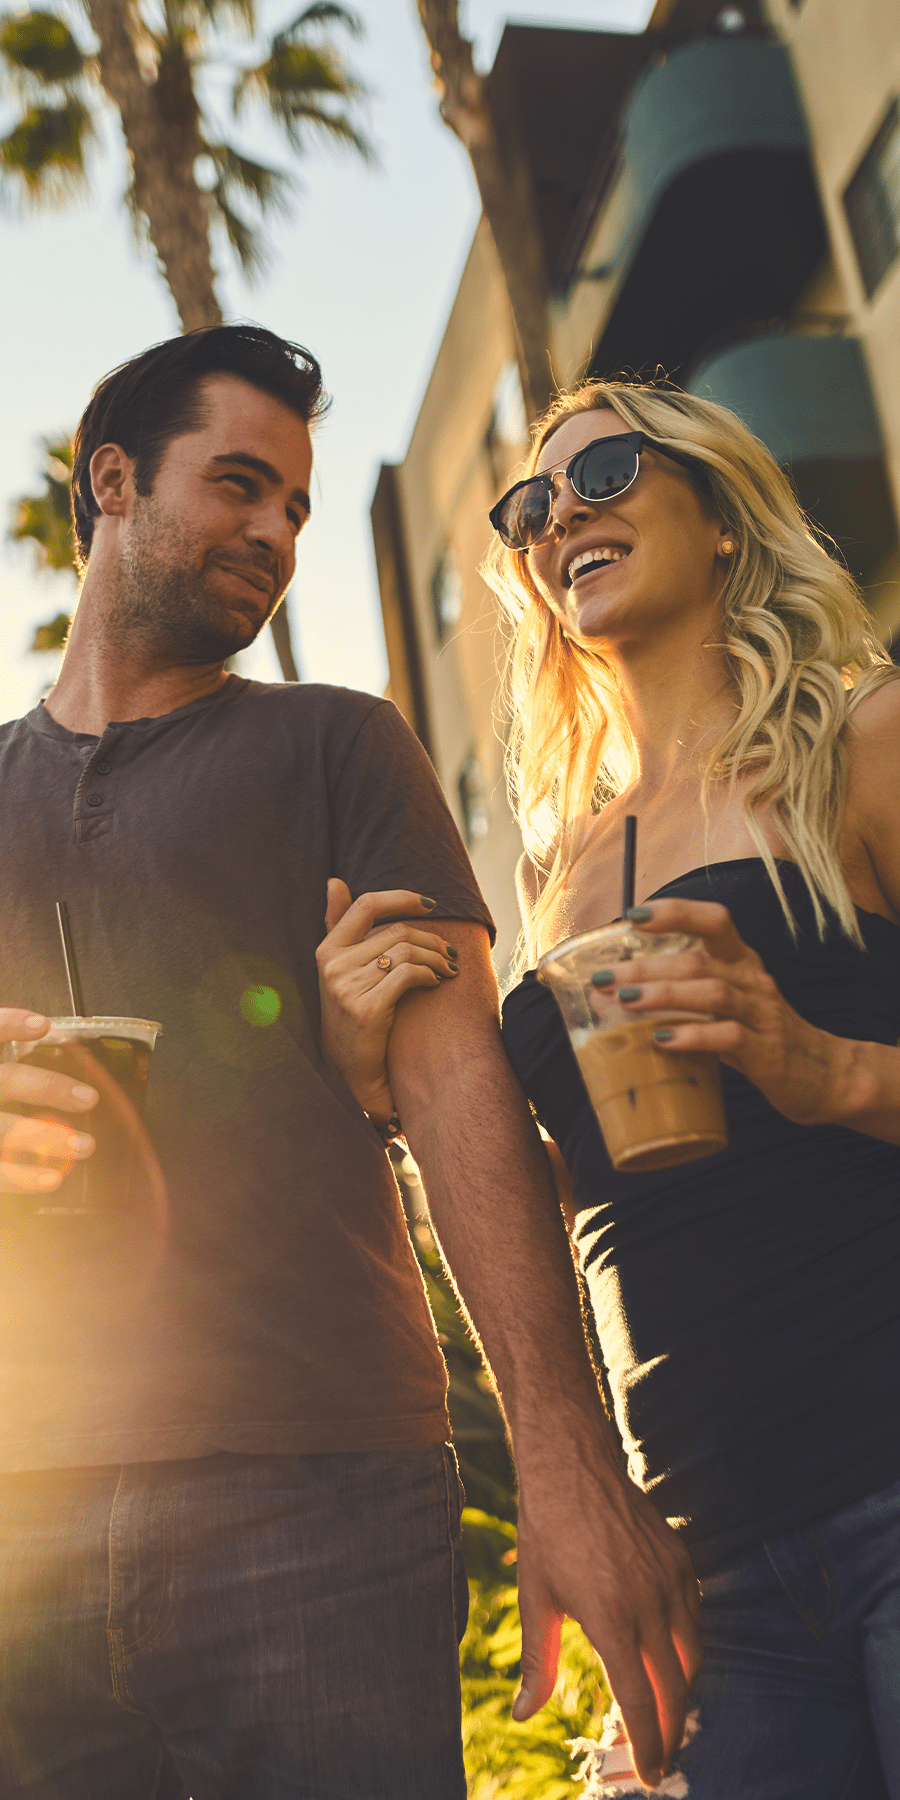 Couple holding iced beverages walking arms linked around the city